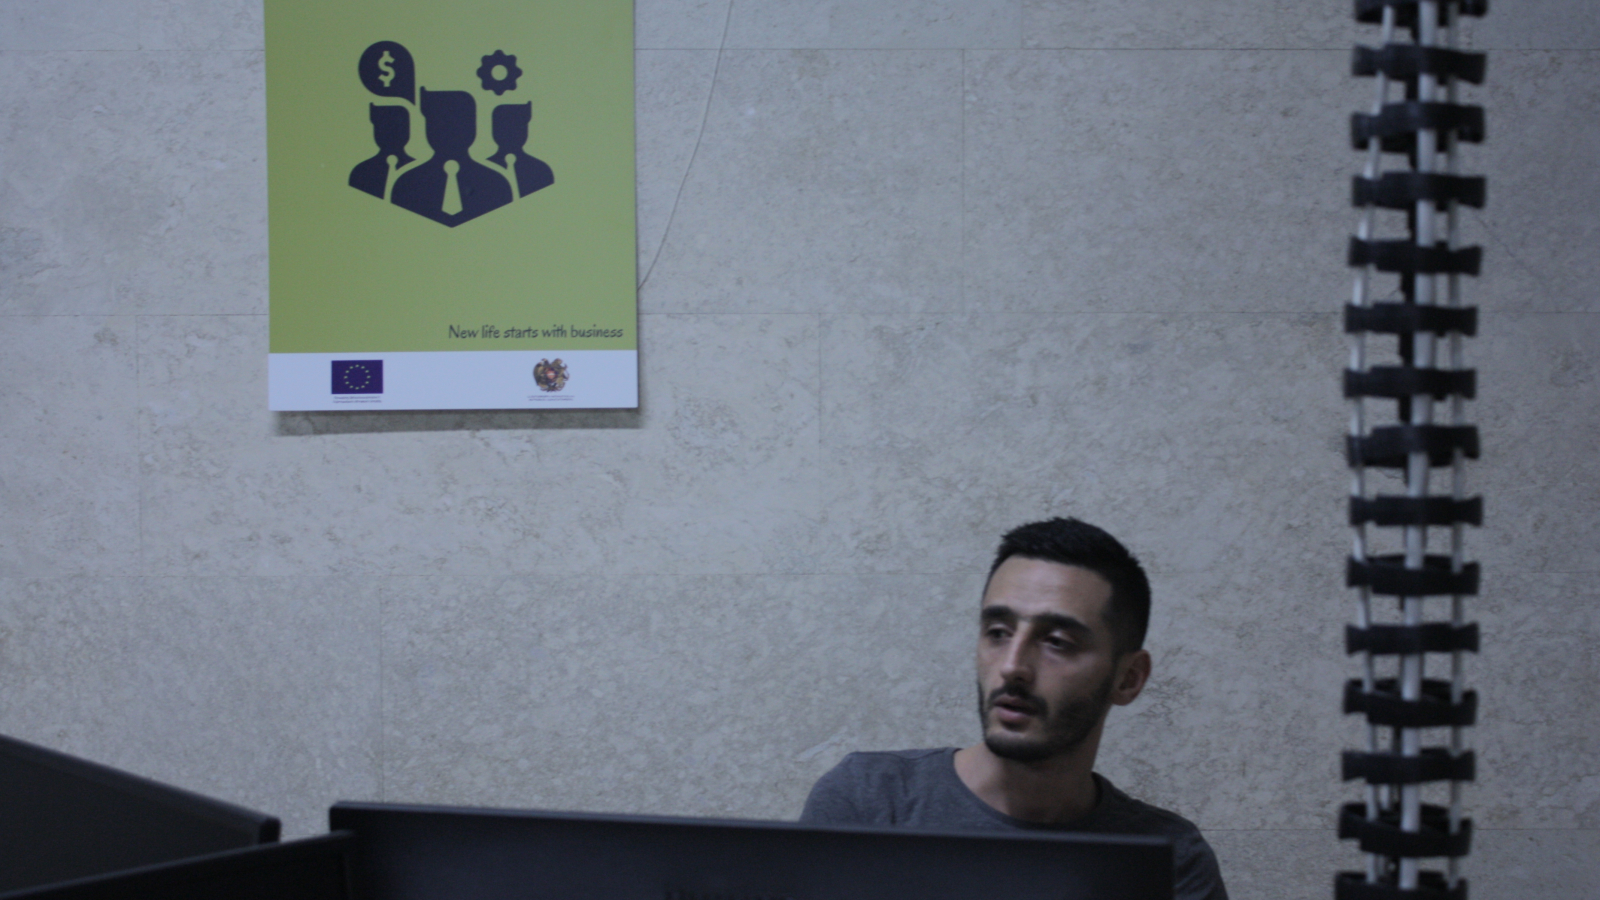 Mkrtich Atchemyan, Web developer